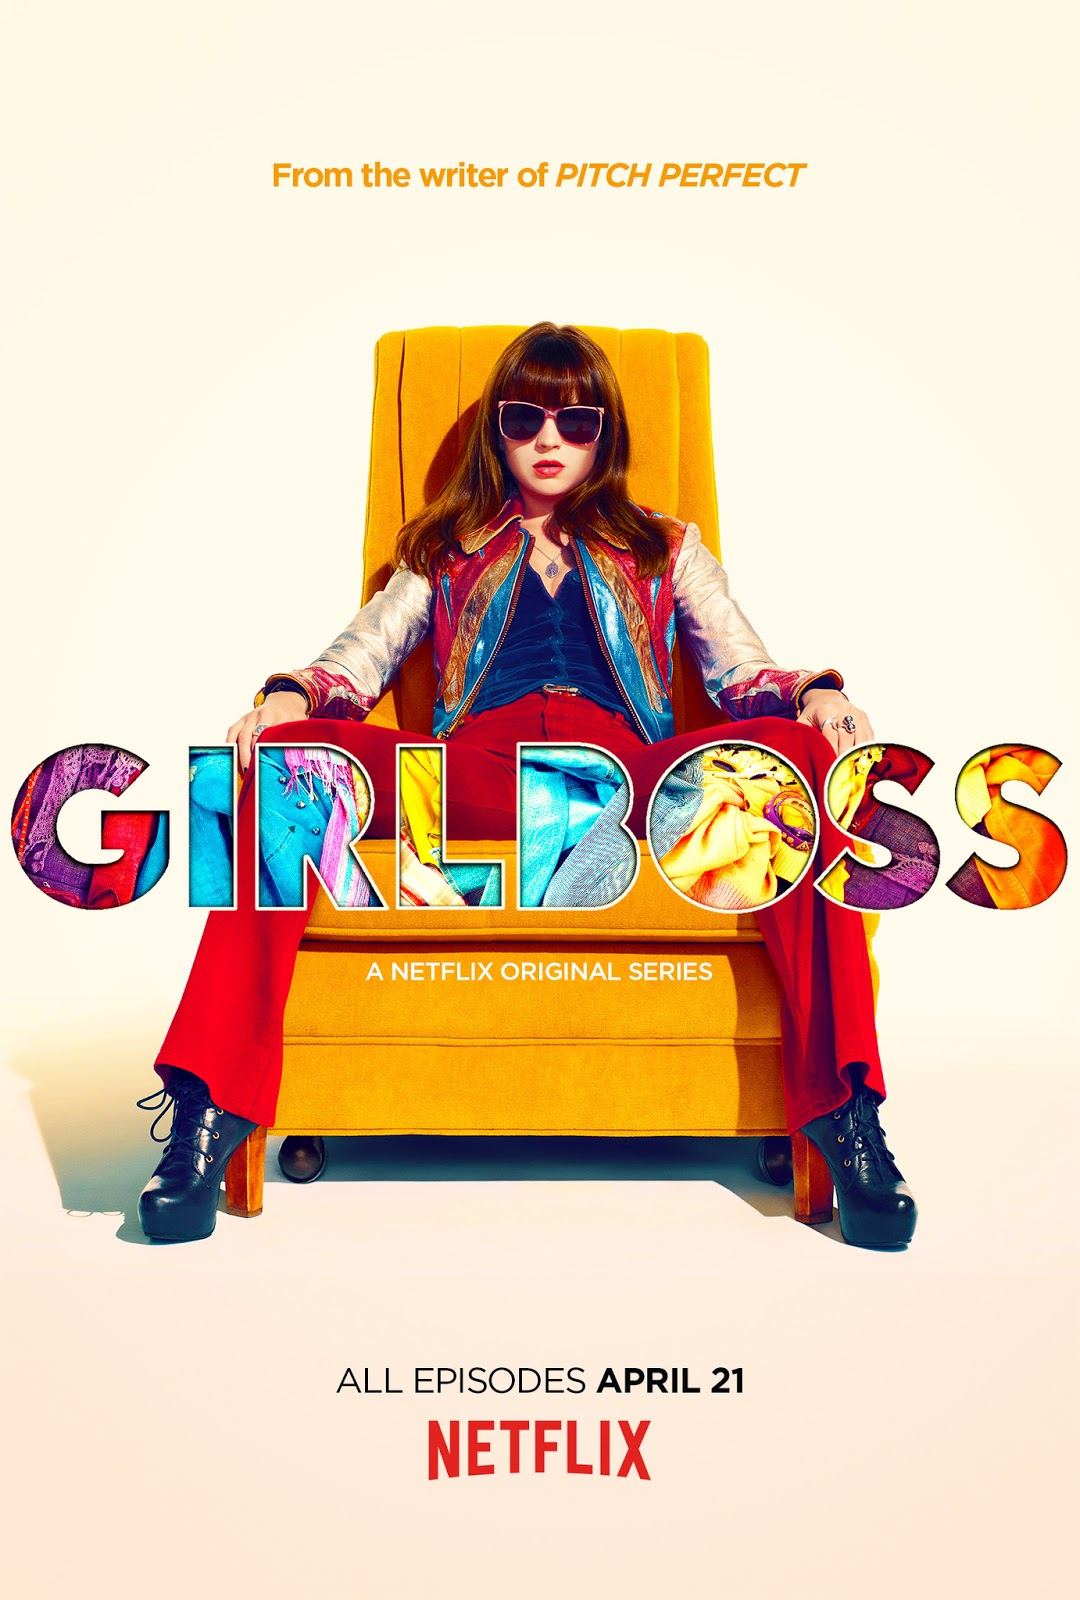 The poster for the Netflix series Girlboss